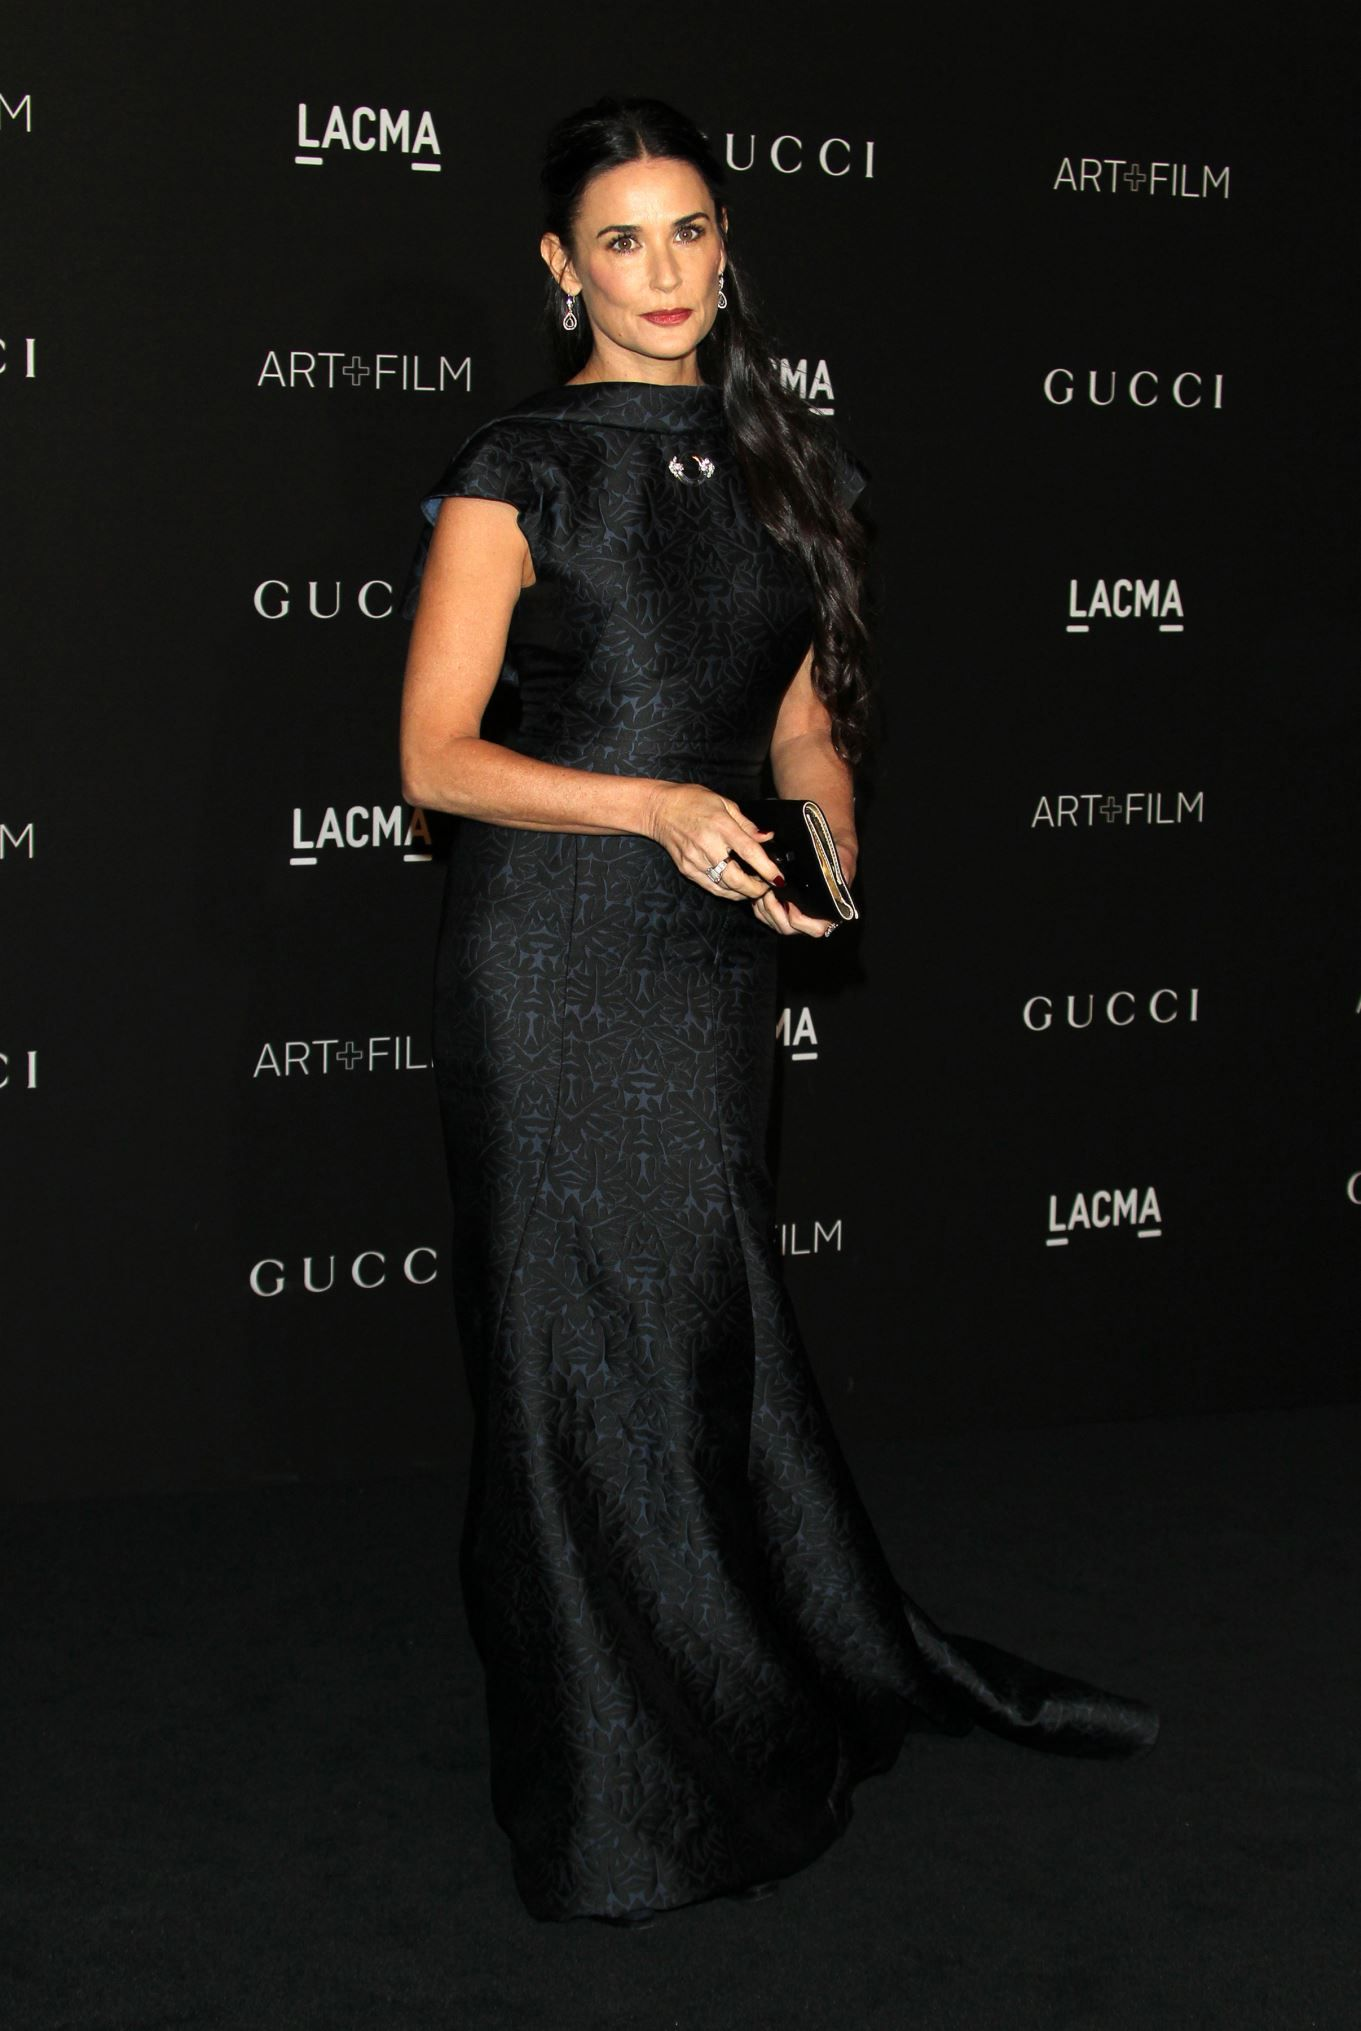 Demi Moore attends the 2014 LACMA Art + Film Gala presented by Gucci at the LACMA in Los Angeles, Calif., on Nov. 1, 2014.